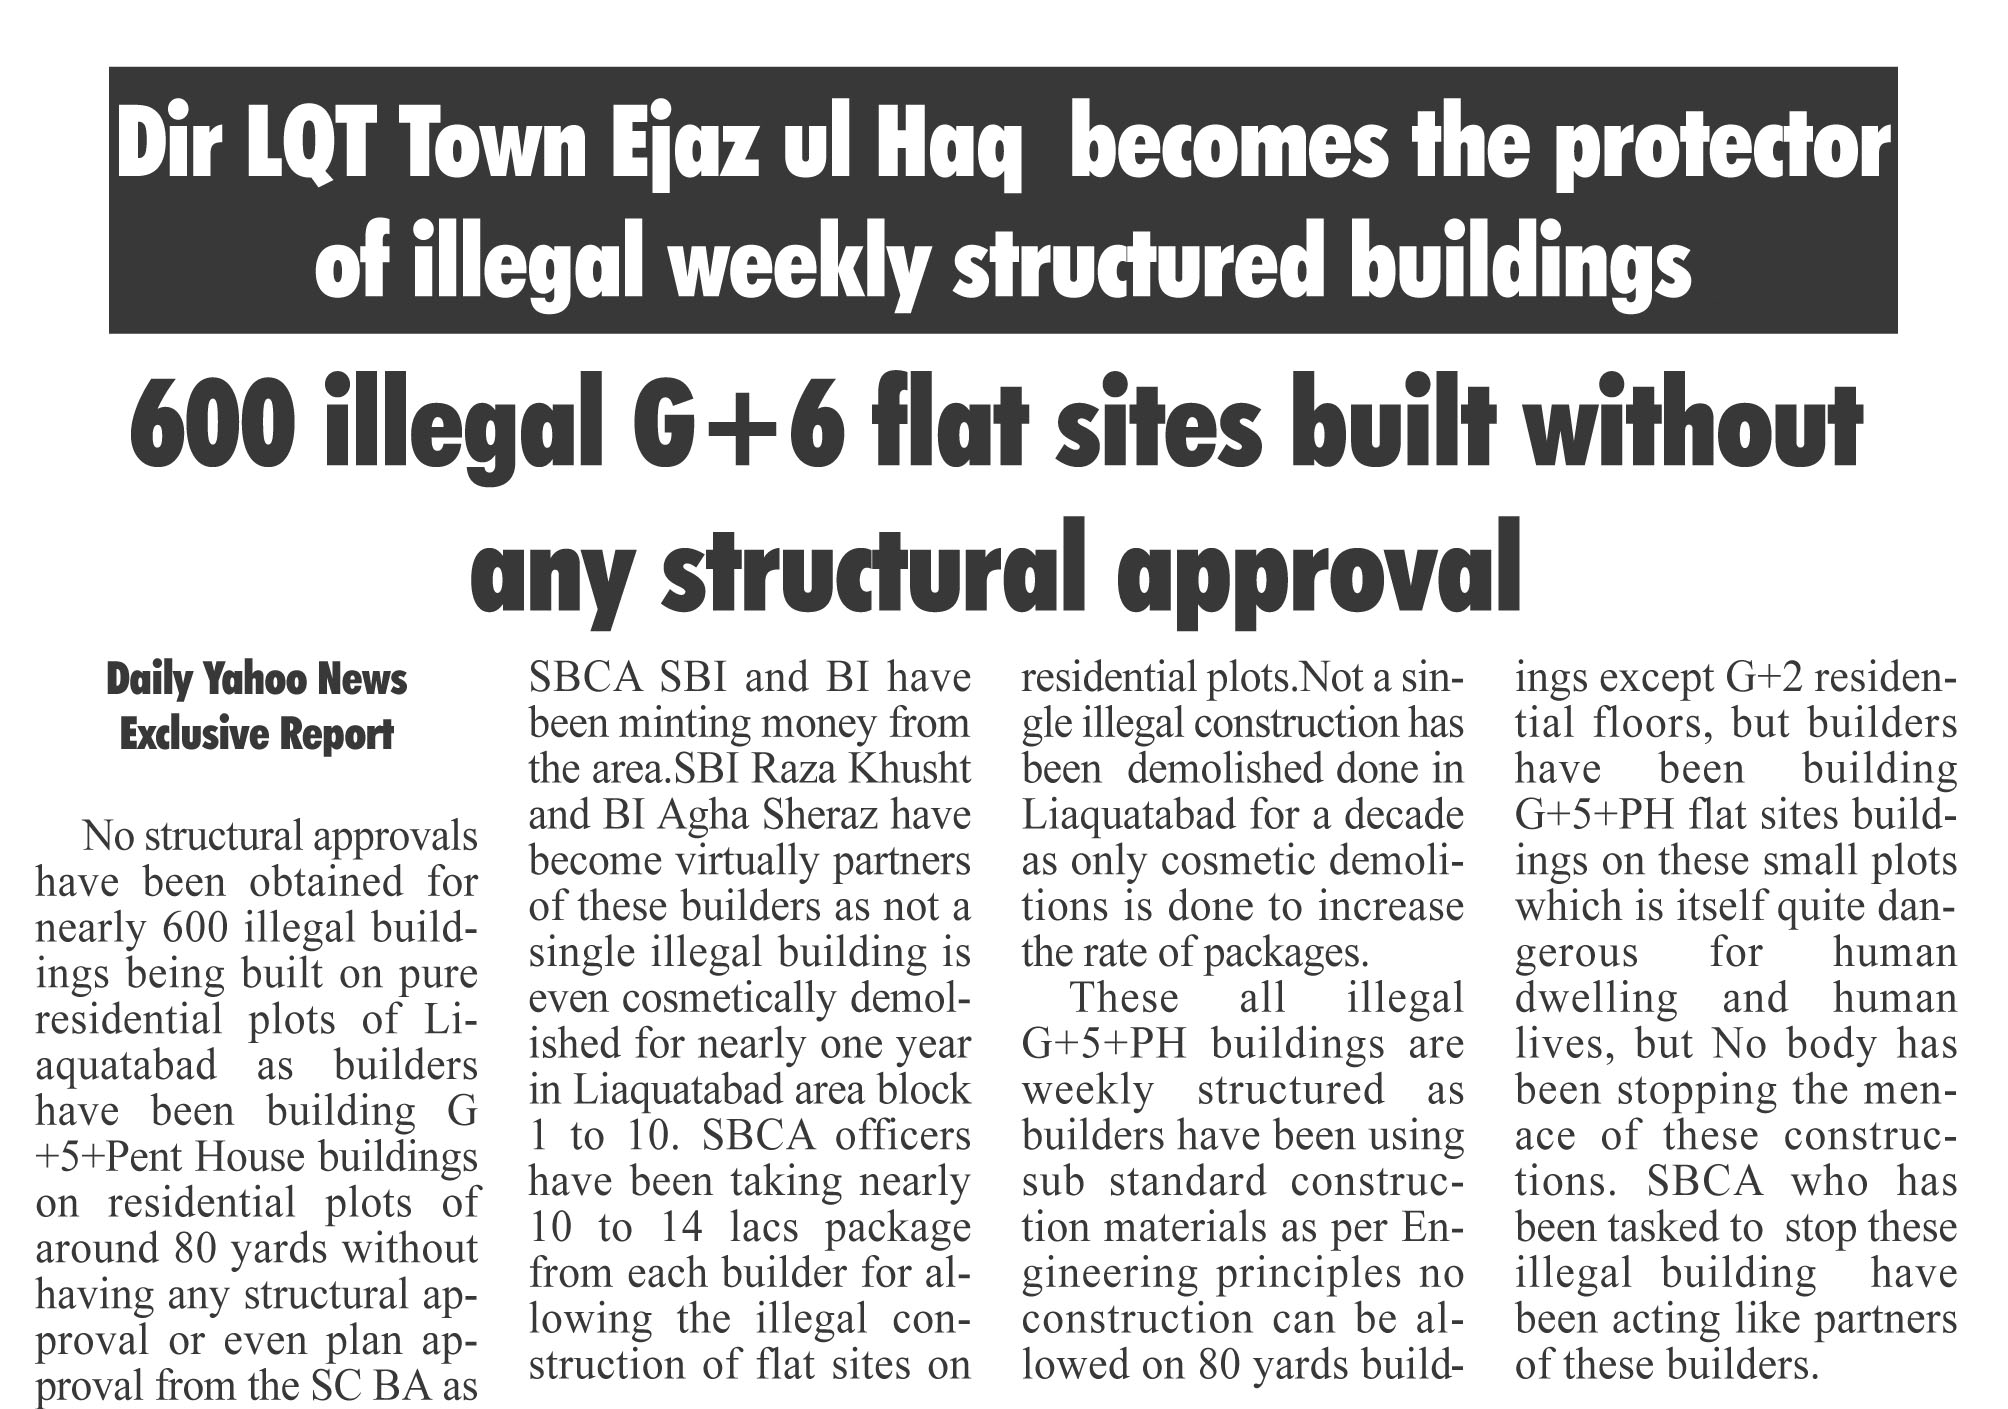 Dir  Liaquatabad Ejaz ul Haq protects 600 illegally  built weakly structured flat sites